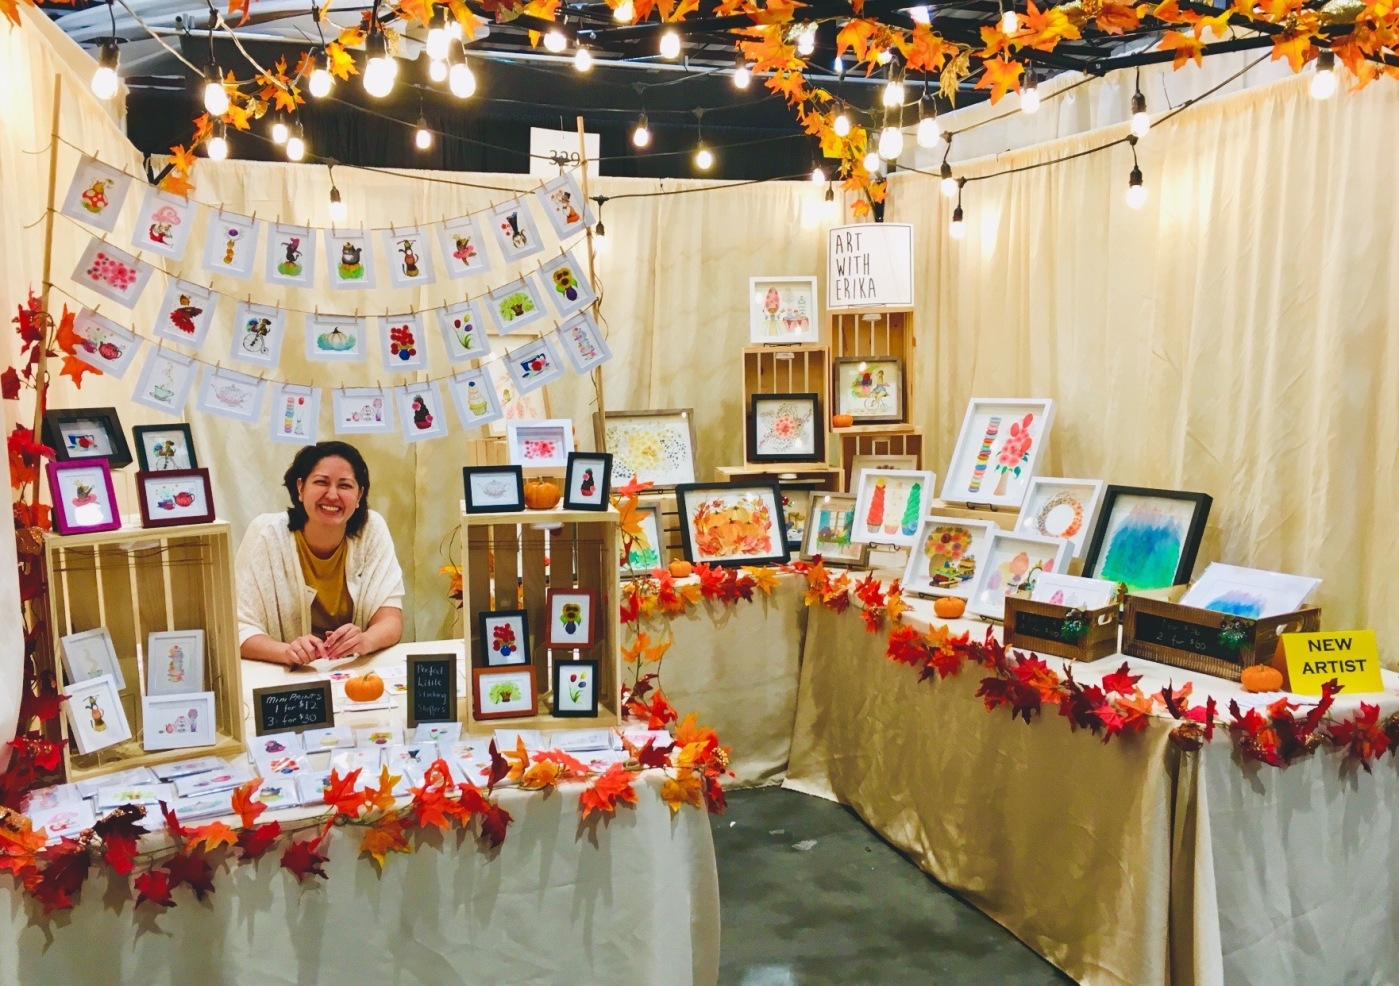 Art With Erika artist booth at the San Jose harvest Festival in 2018